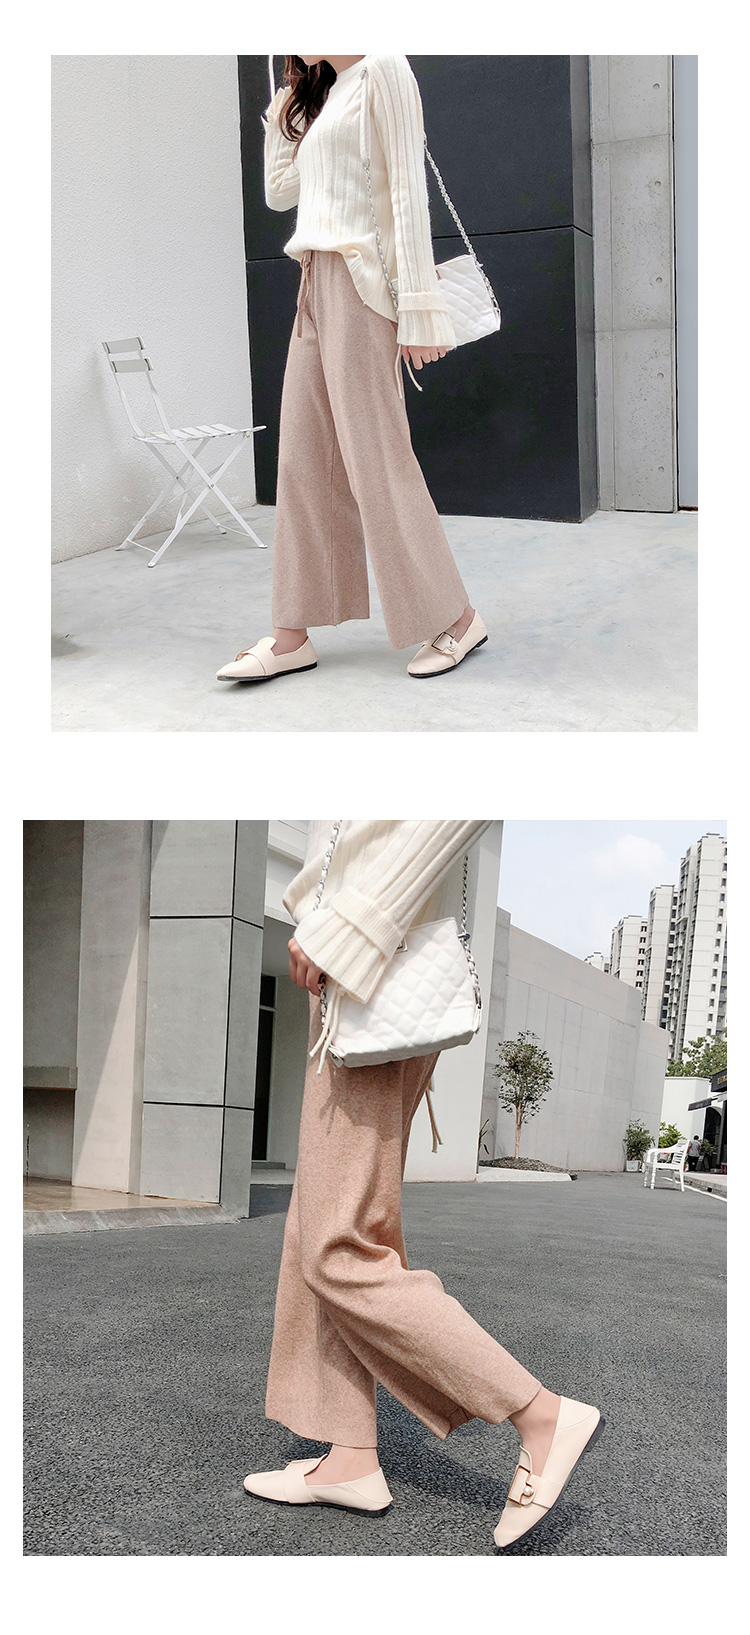 2019 autumn winter new THICK casual straight pants women female drawstring loose knitted wide leg pants casual Trousers 23